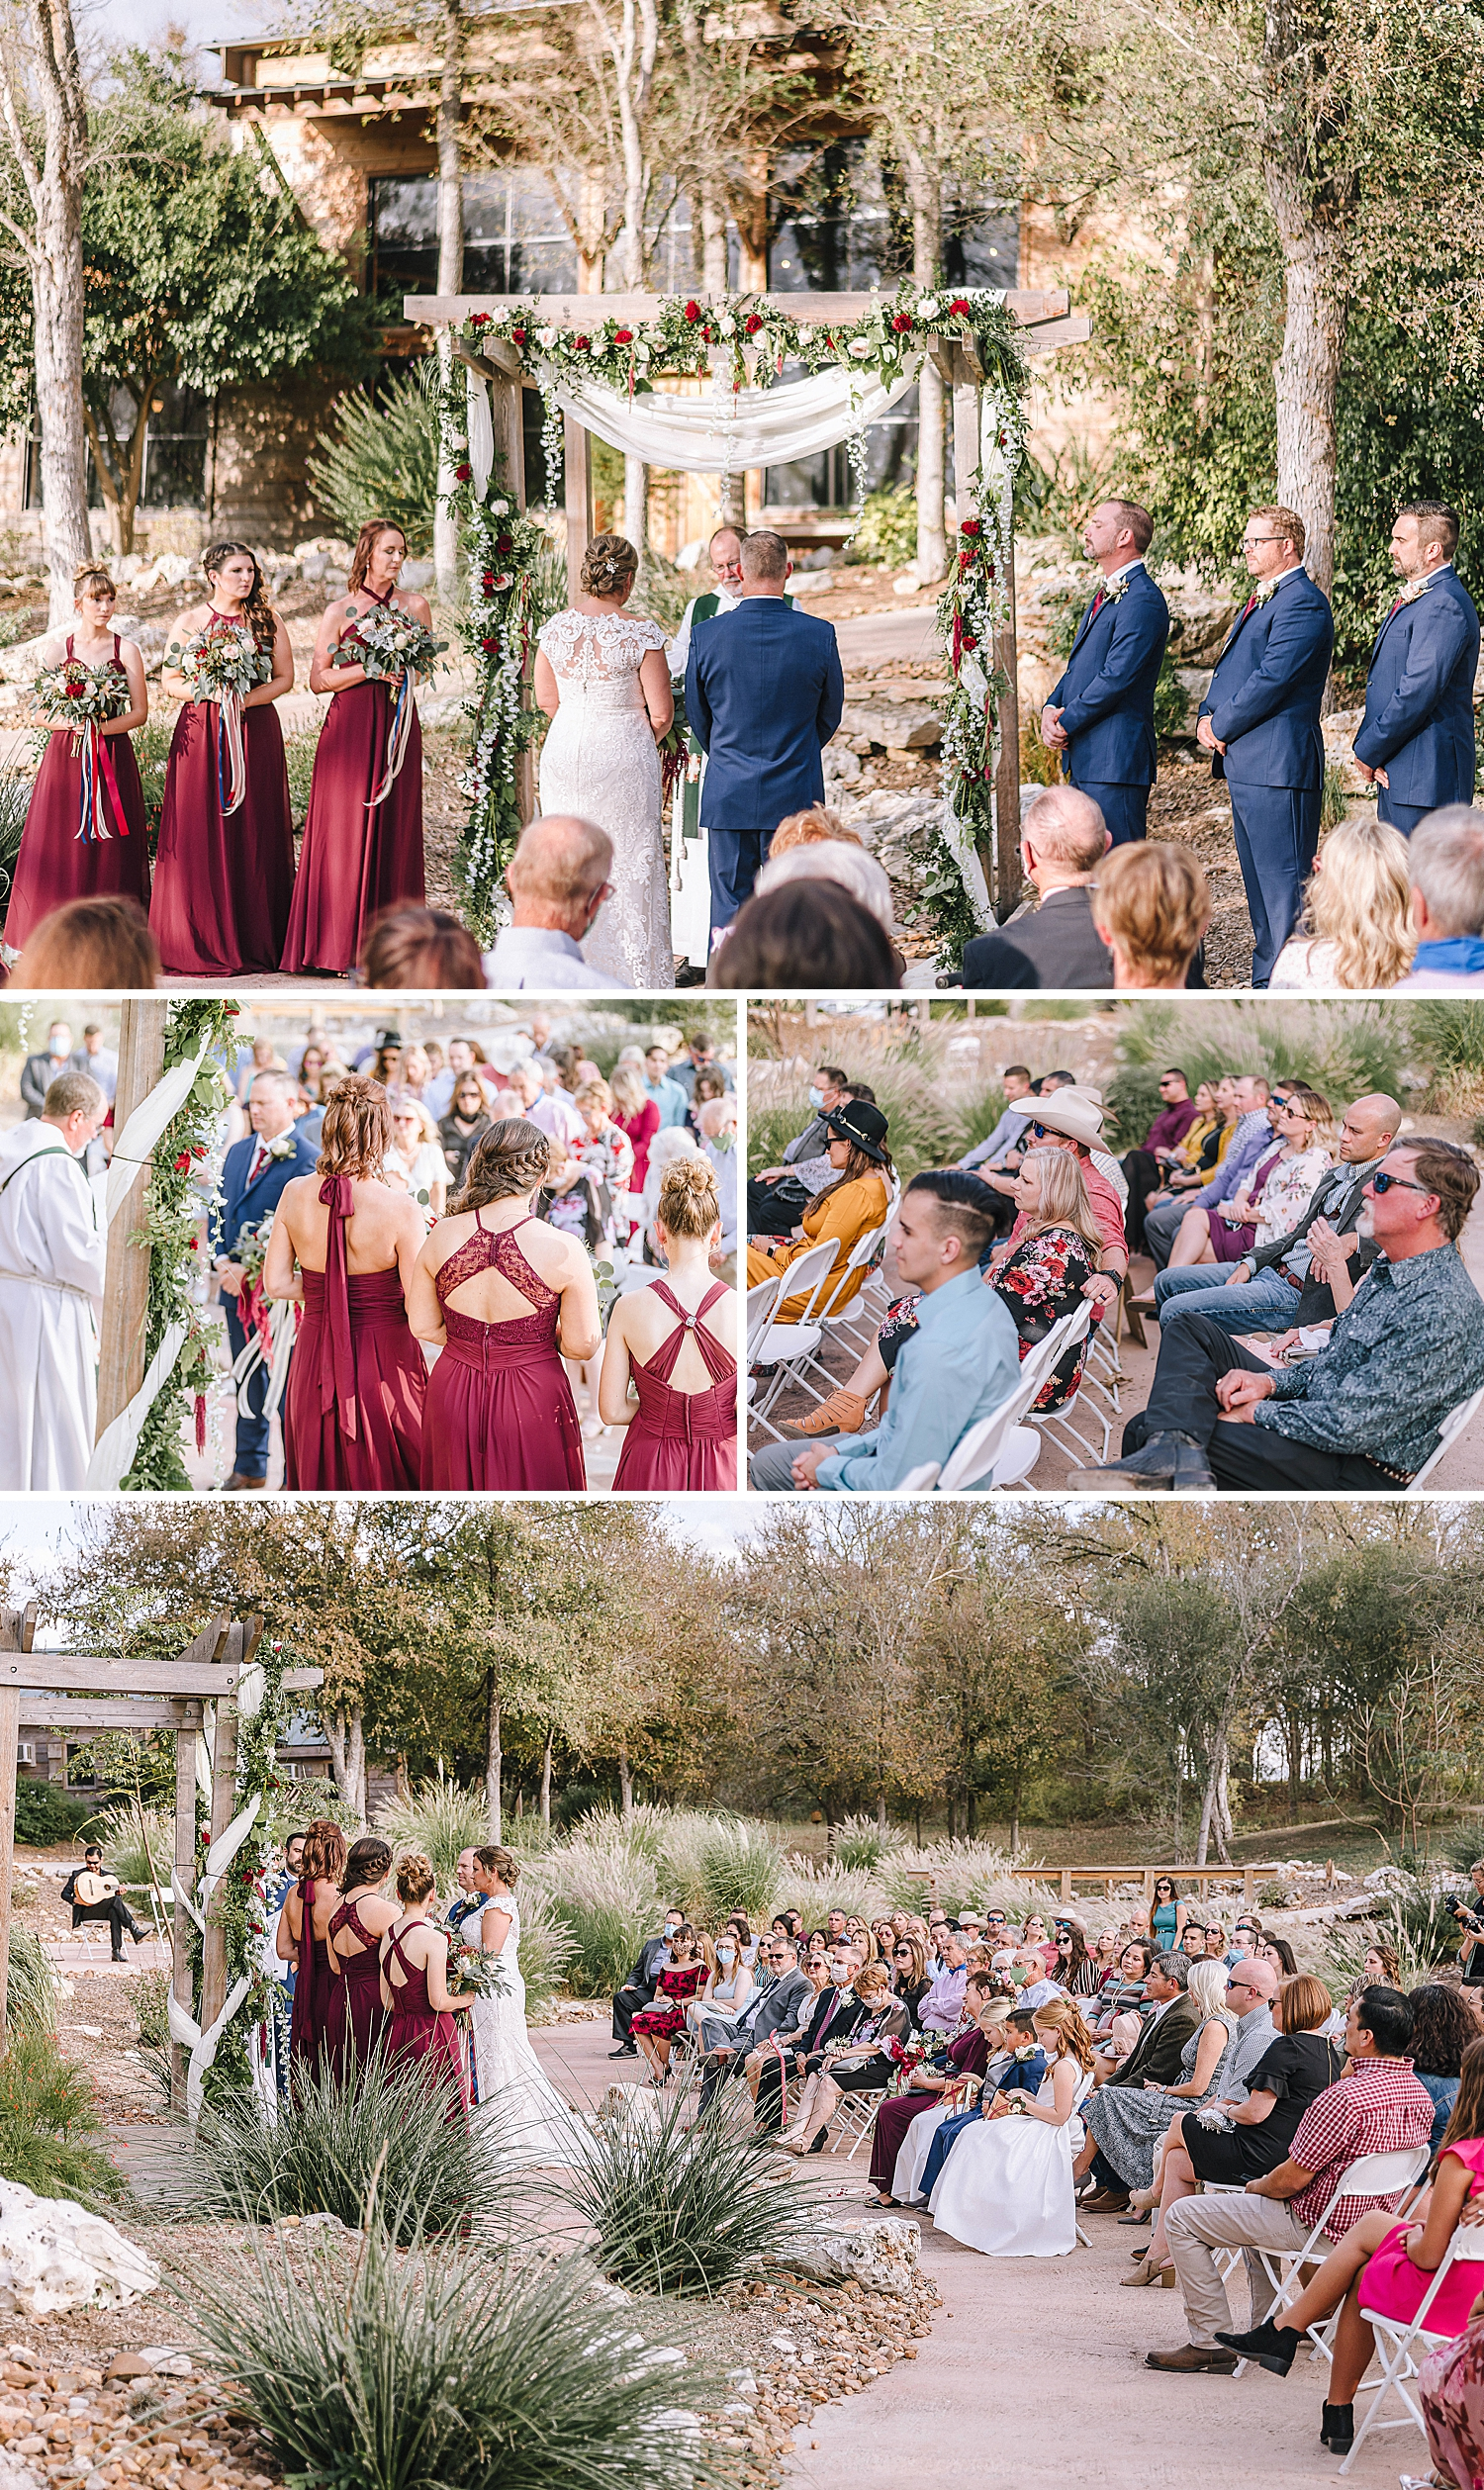 Geronimo-Oaks-Wedding-Venue-Seguin-Texas-Elegant-Navy-Burgundy-Wedding-Carly-Barton-Photography_0019.jpg